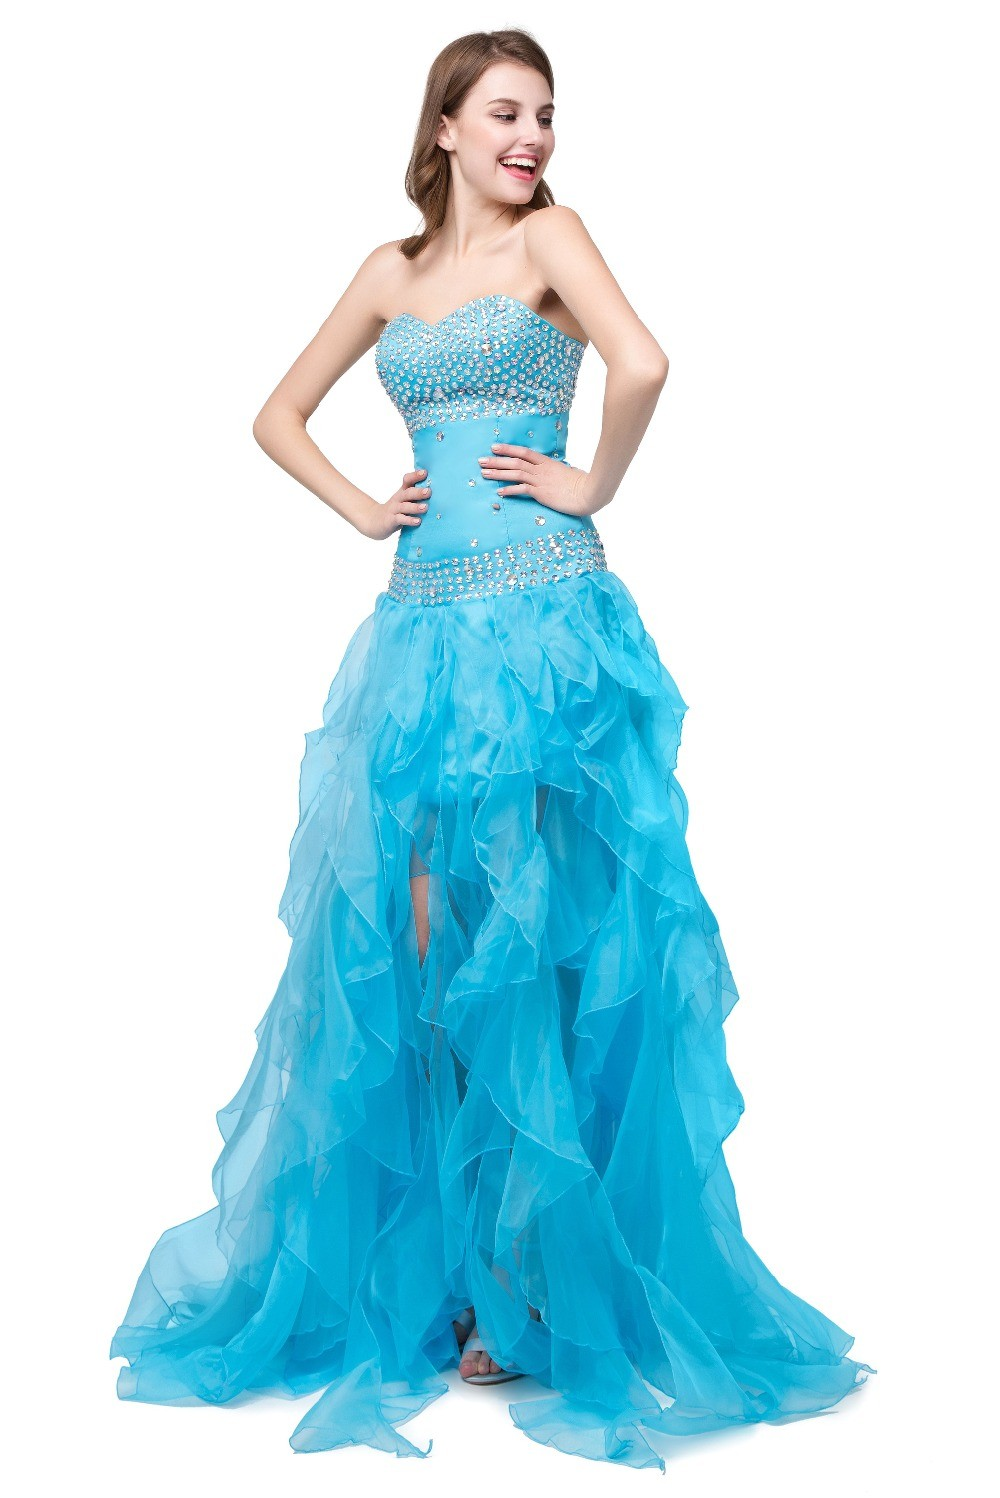 Compare Prices on Youth Formal Dresses- Online Shopping/Buy Low ...